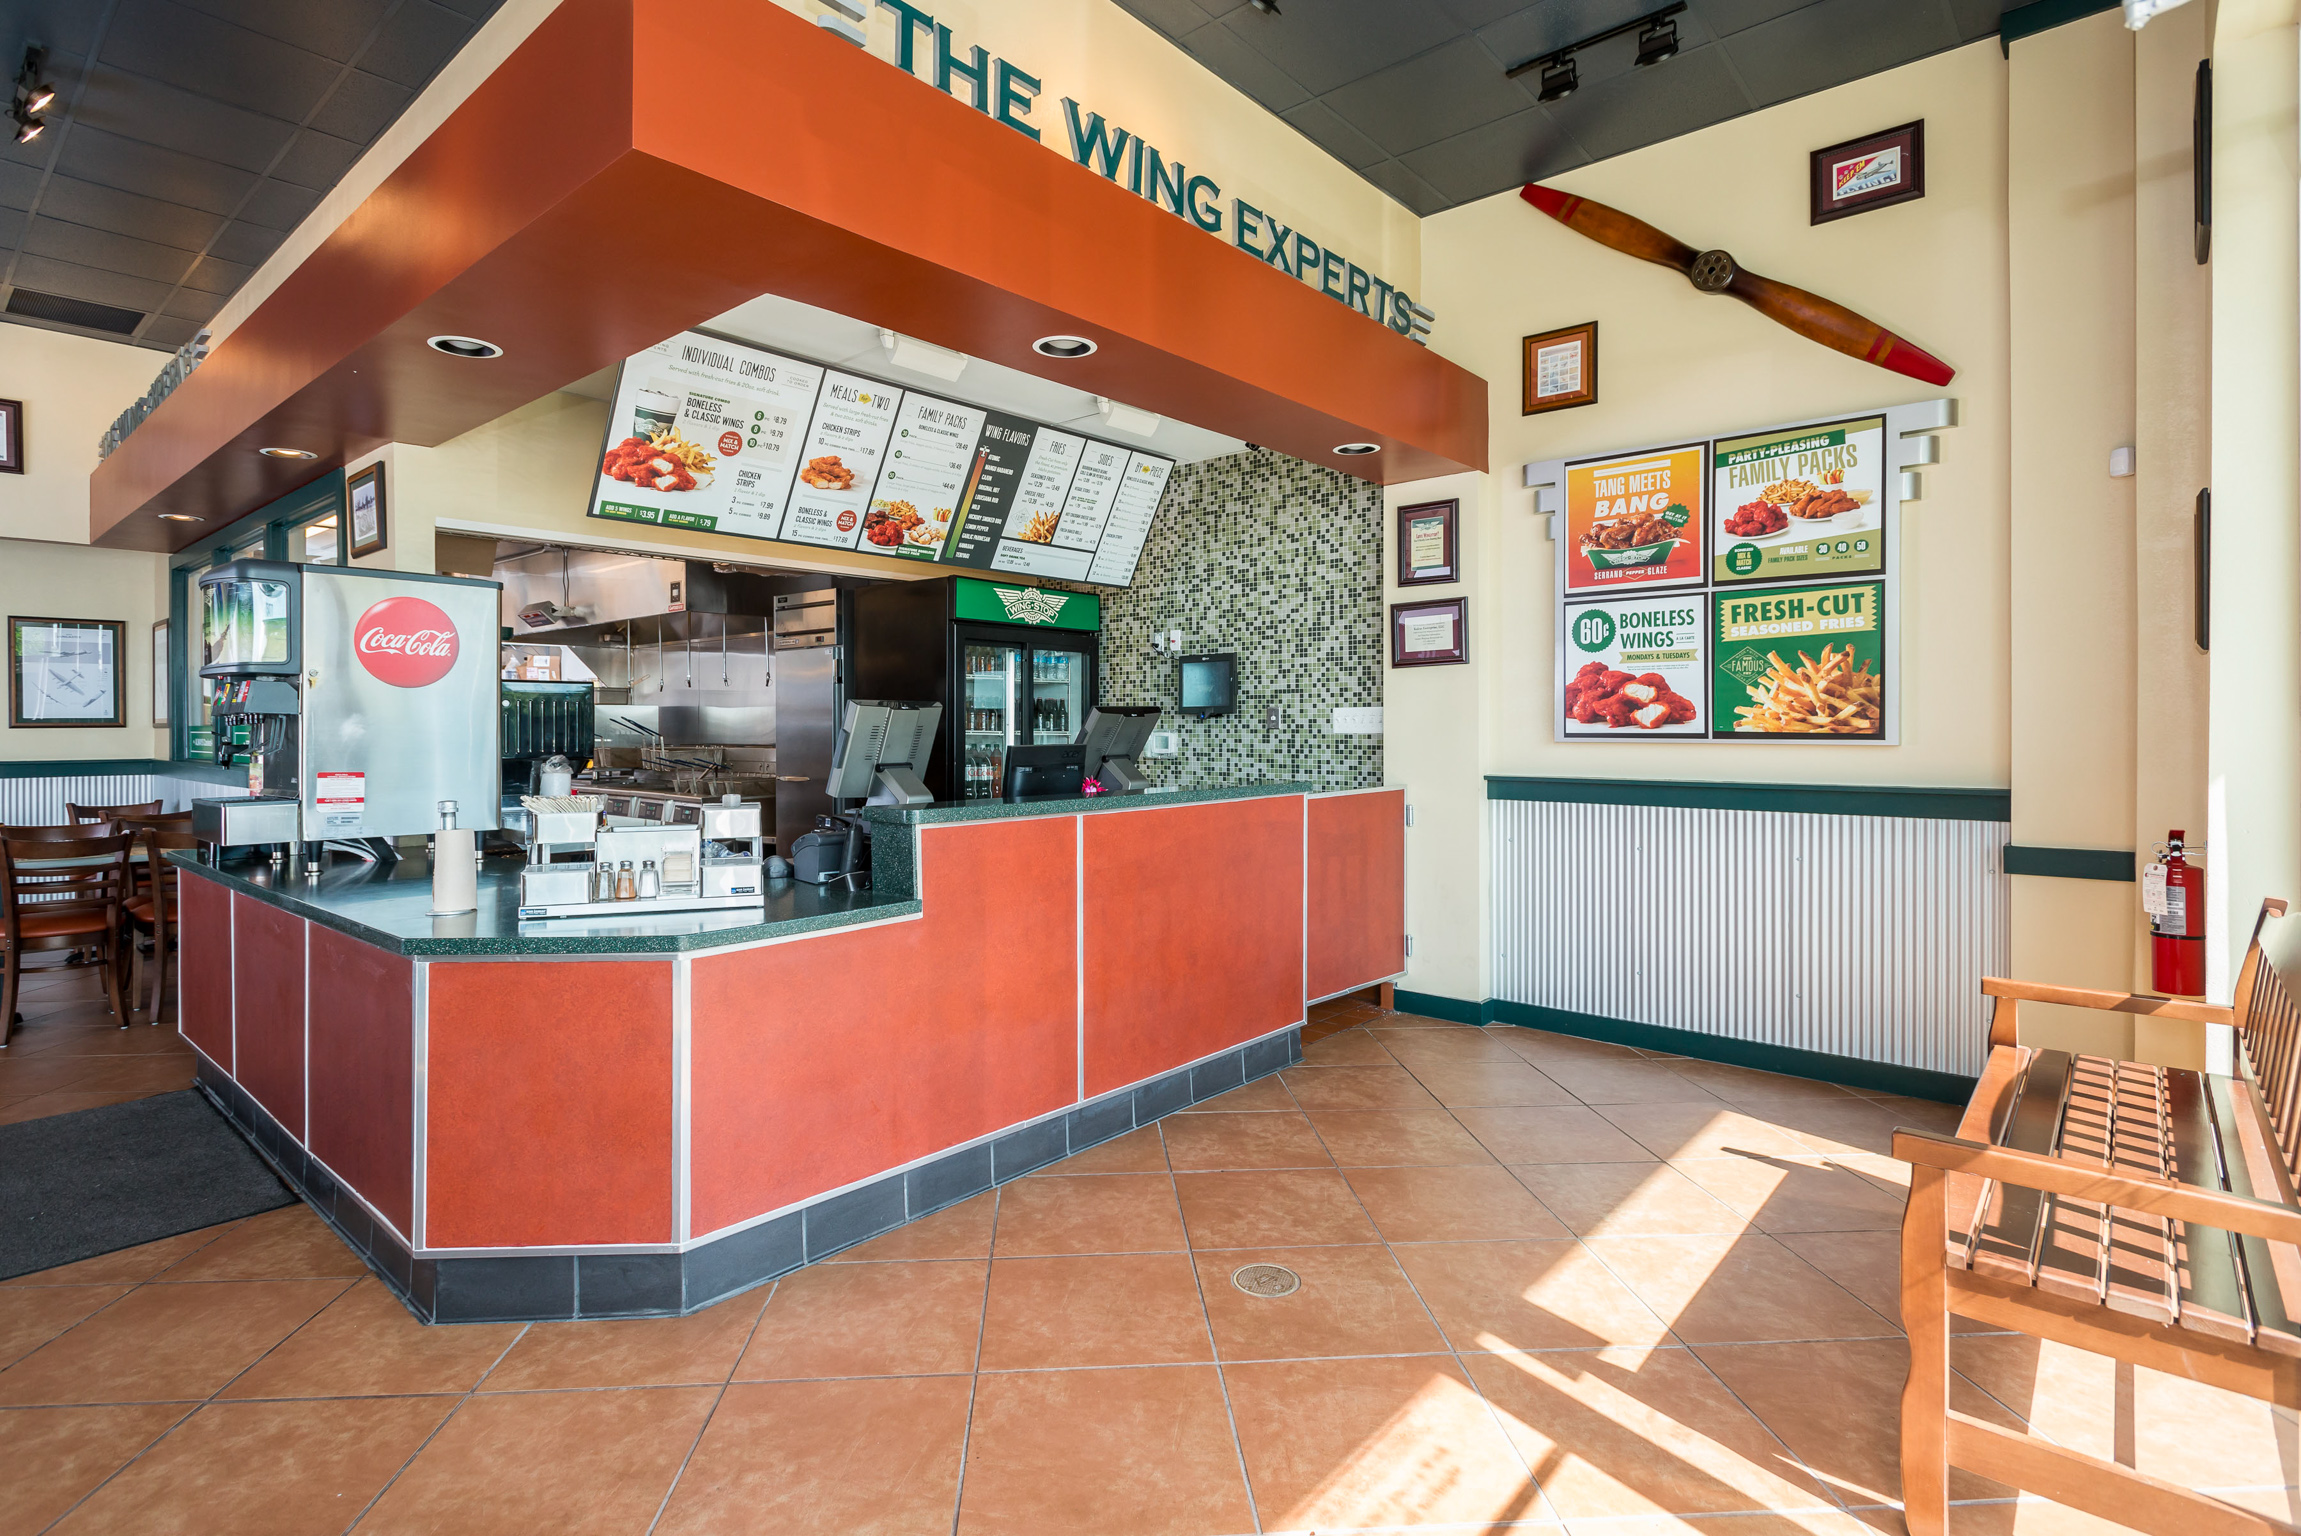 Excelsiordrive 16 12 Commercial Construction Of The Wingstop In Bowie Md Is Now Complete And Restaurant